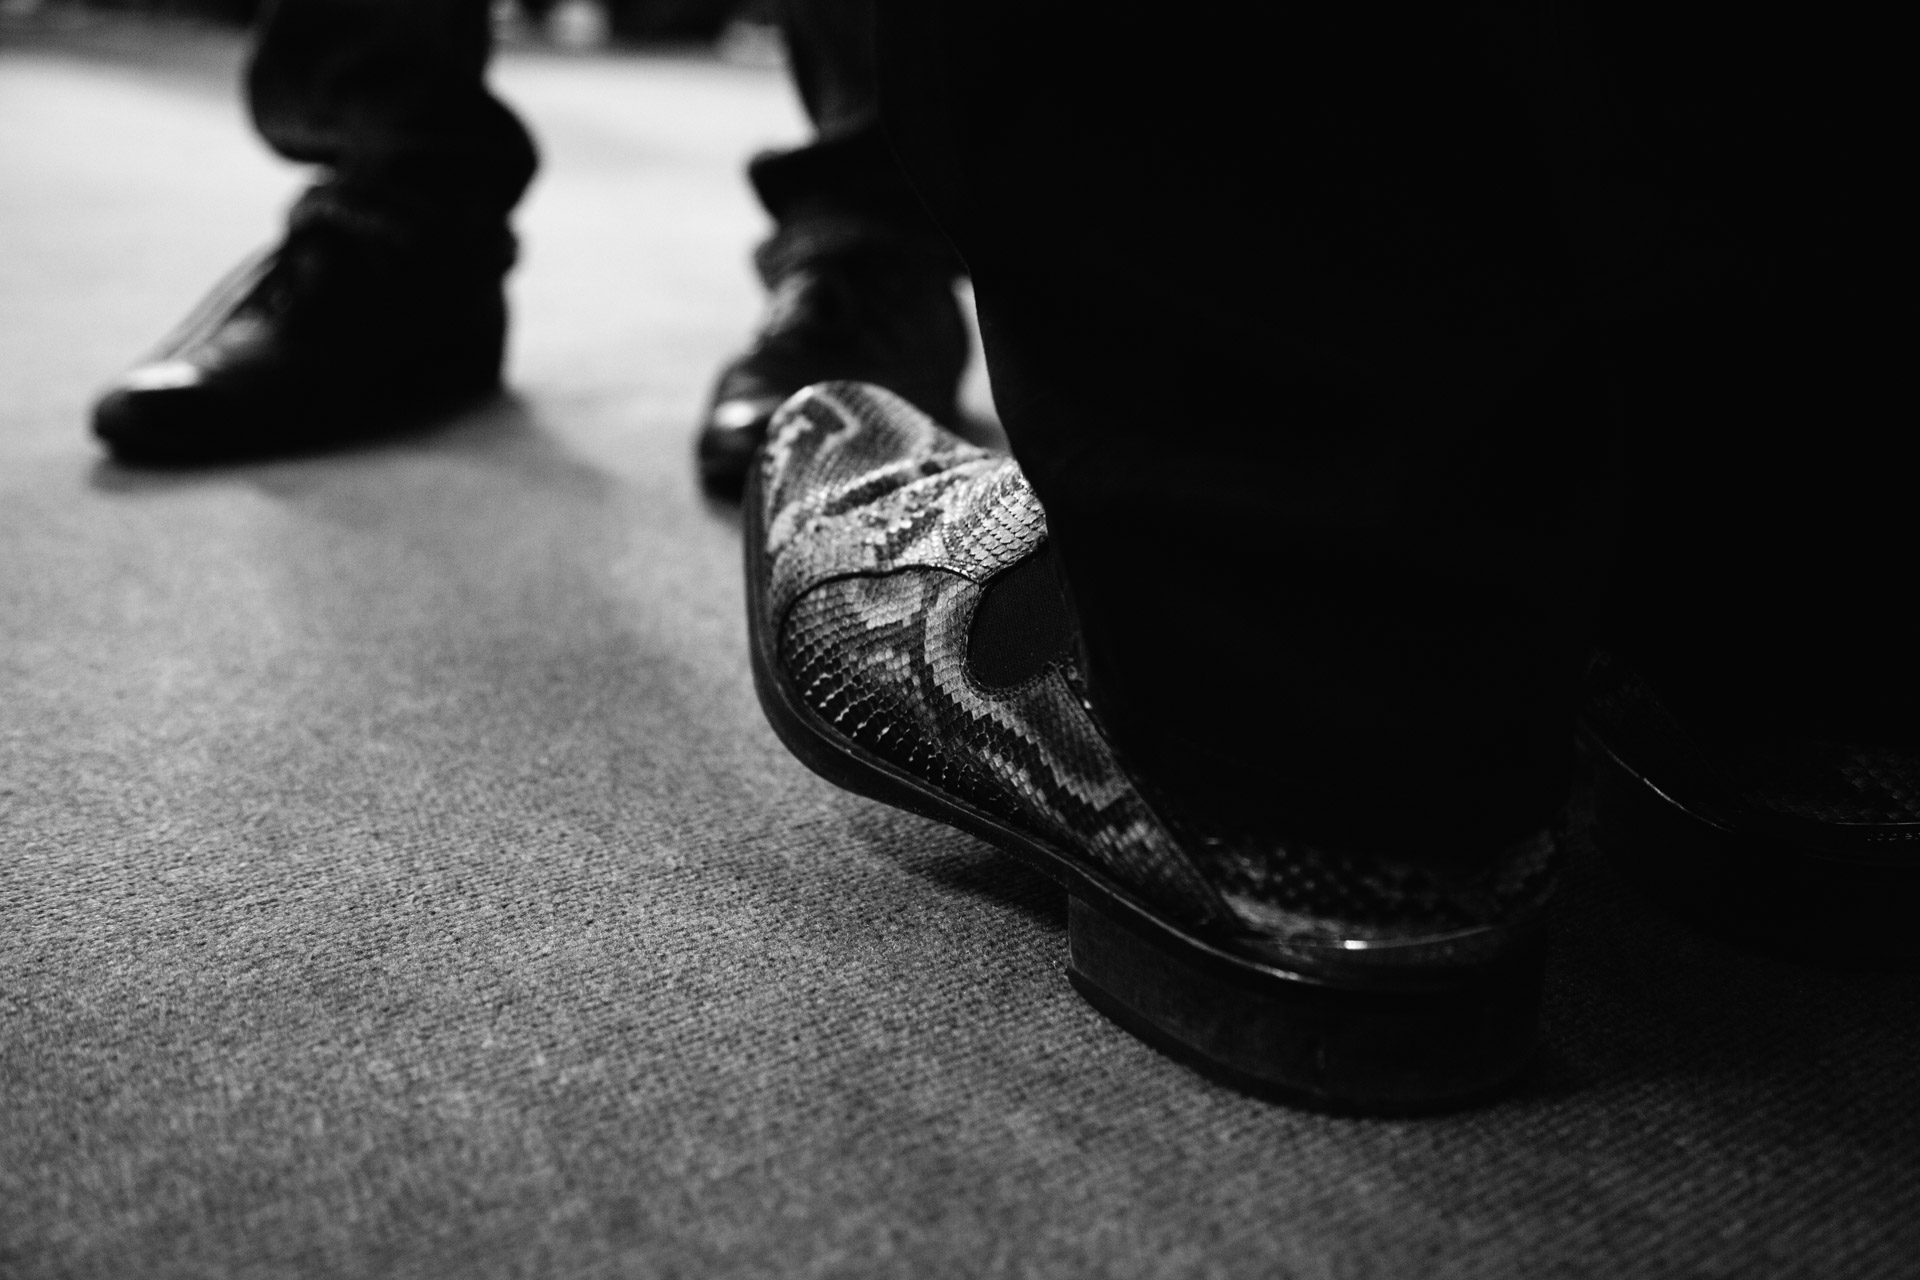 After Michael Kenna's talk on the Super Stage I sat on the ground to make notes. As he stopped right in front of me I couldn't help notice his shoes!